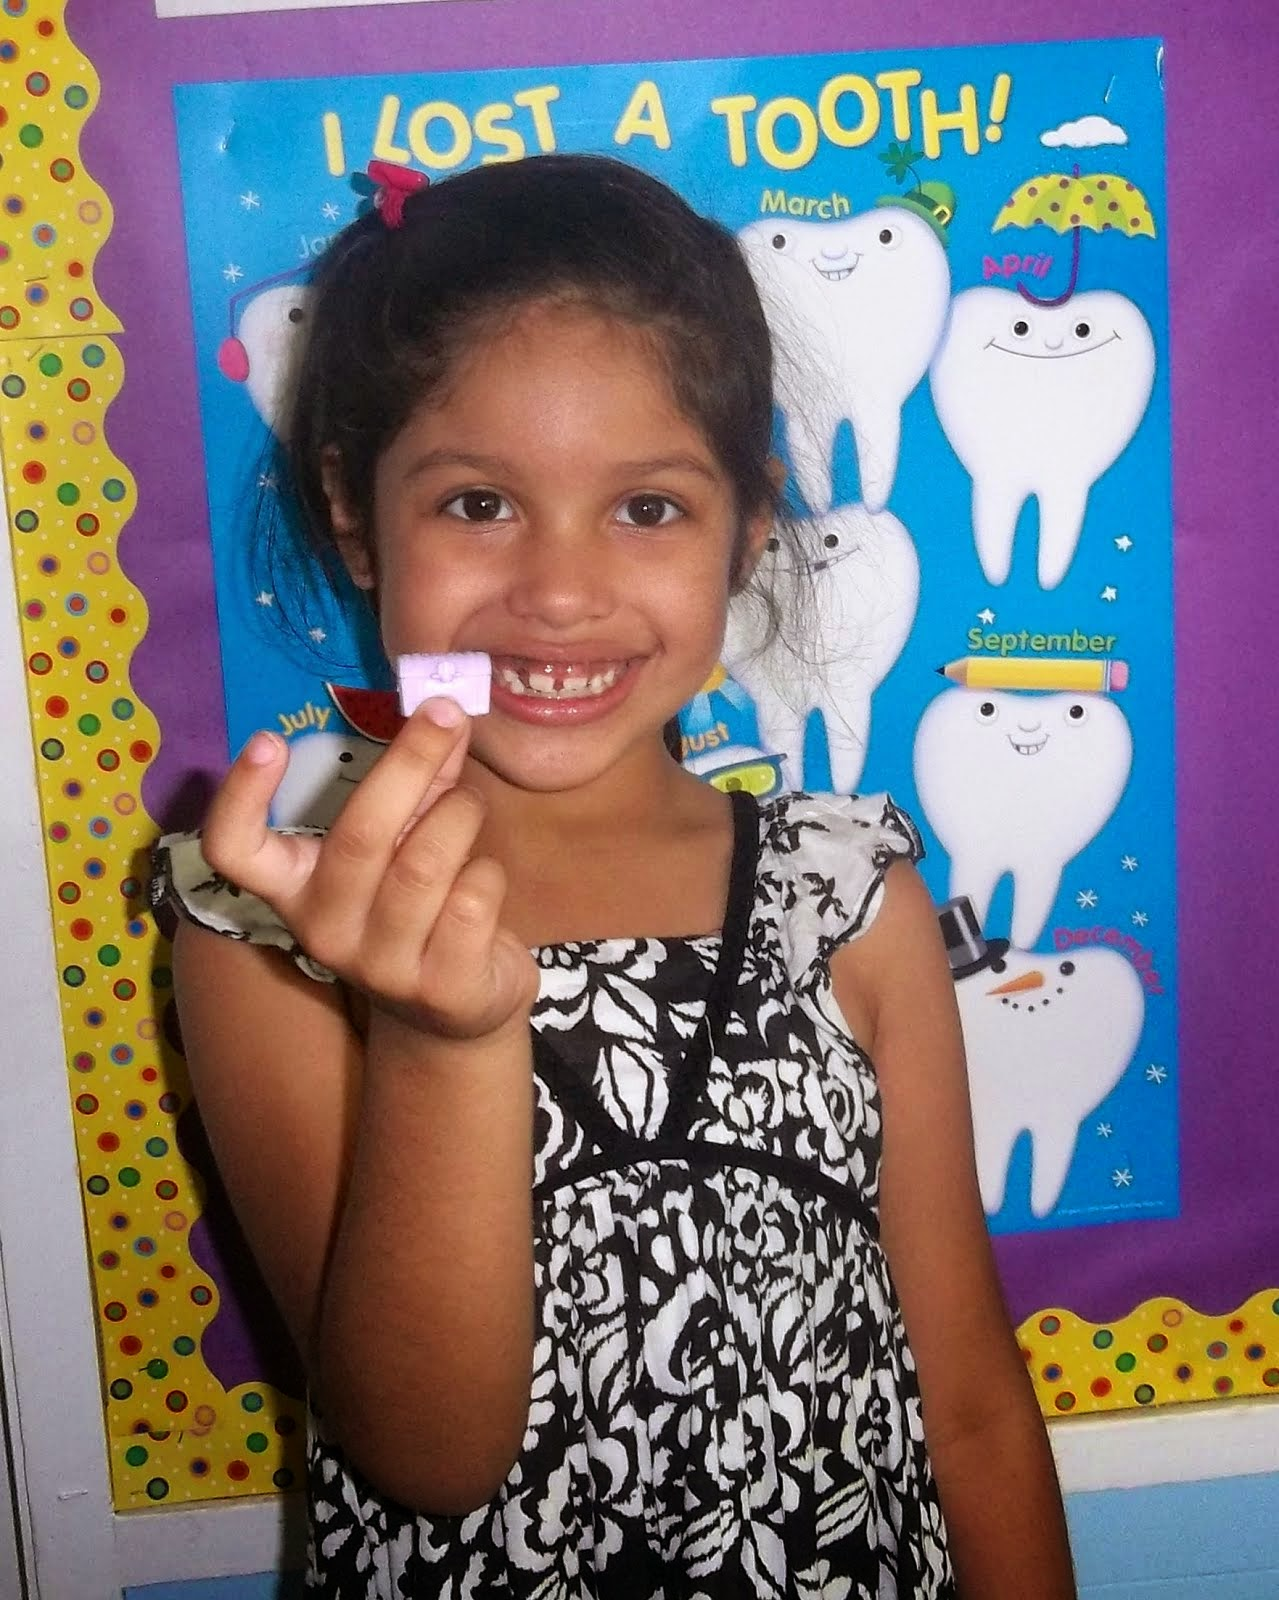 Abigail lost a tooth!